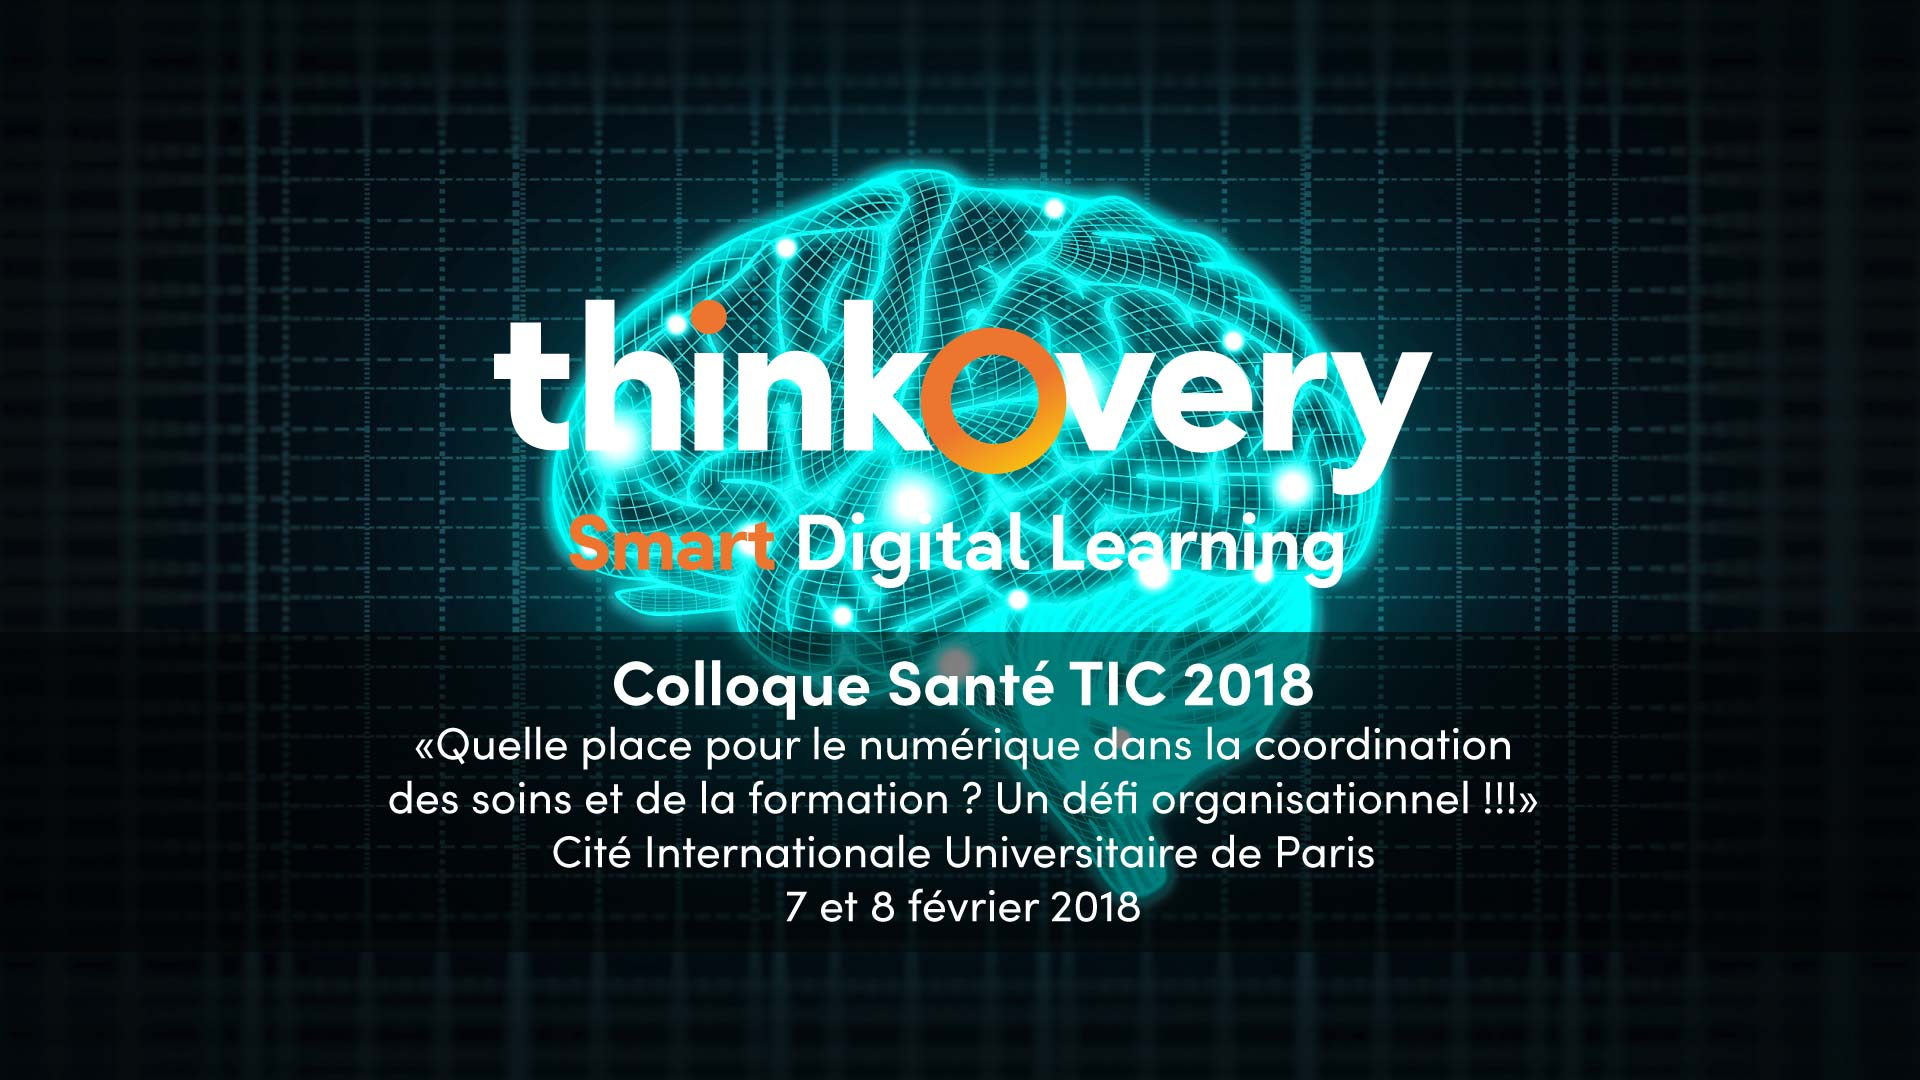 colloque TIC sante 2018 digital learning thinkovery